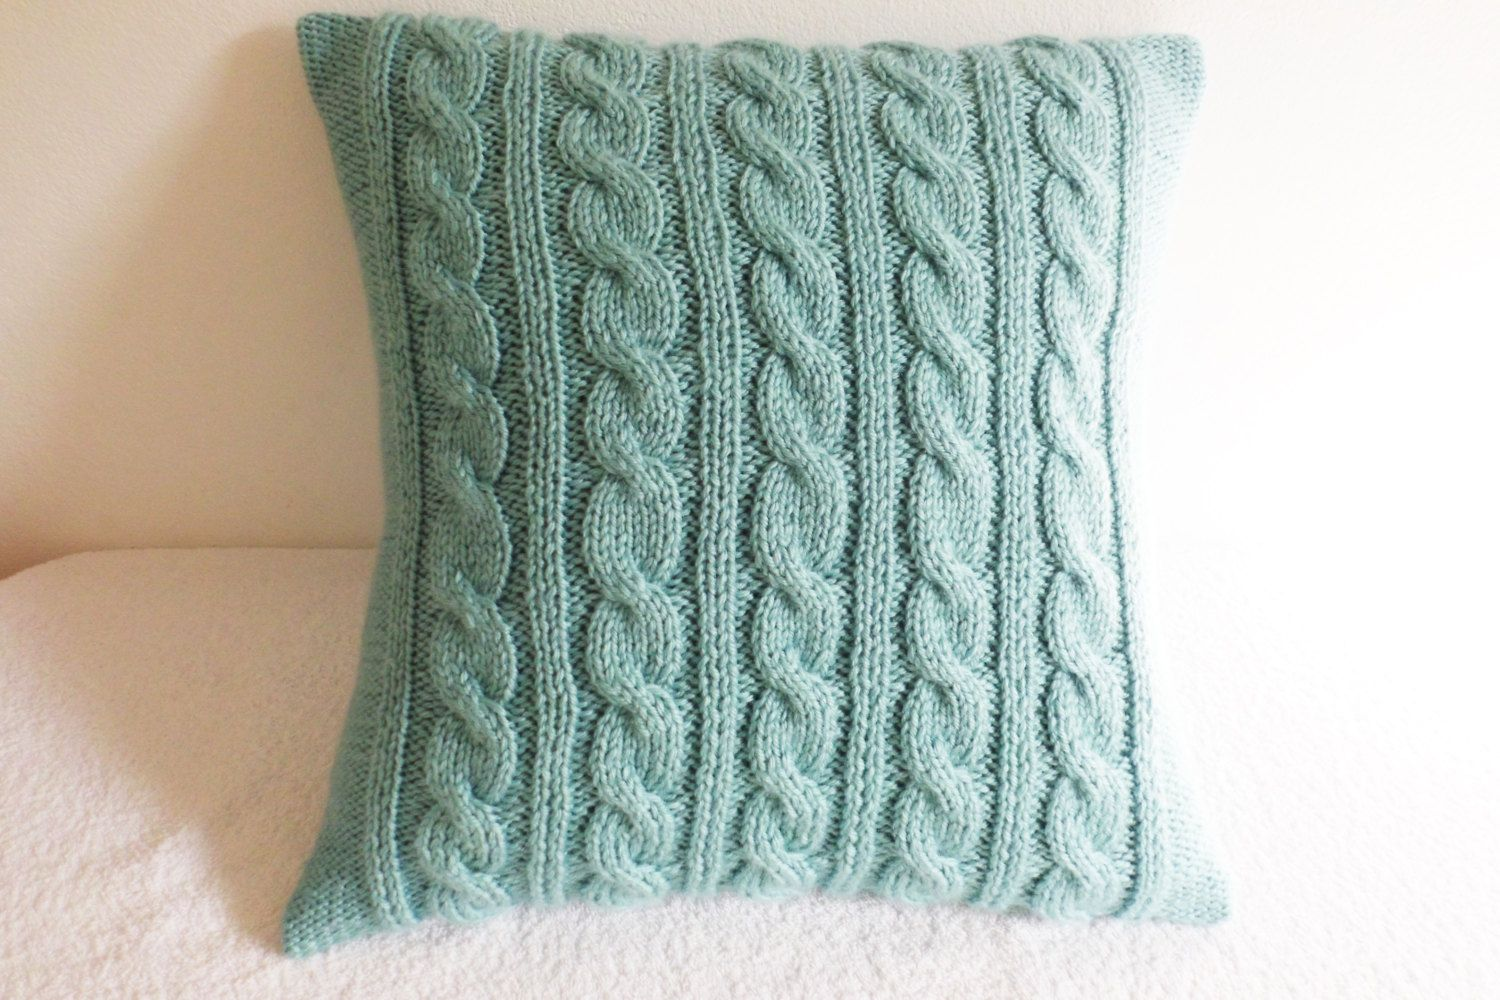 Decorative Mint Knit Throw Pillow Cable Knit Pillow Cover Hand Knitted Pillow Case Light Mint Couch Pi Knitted Cushions Knitted Cushion Covers Knit Pillow